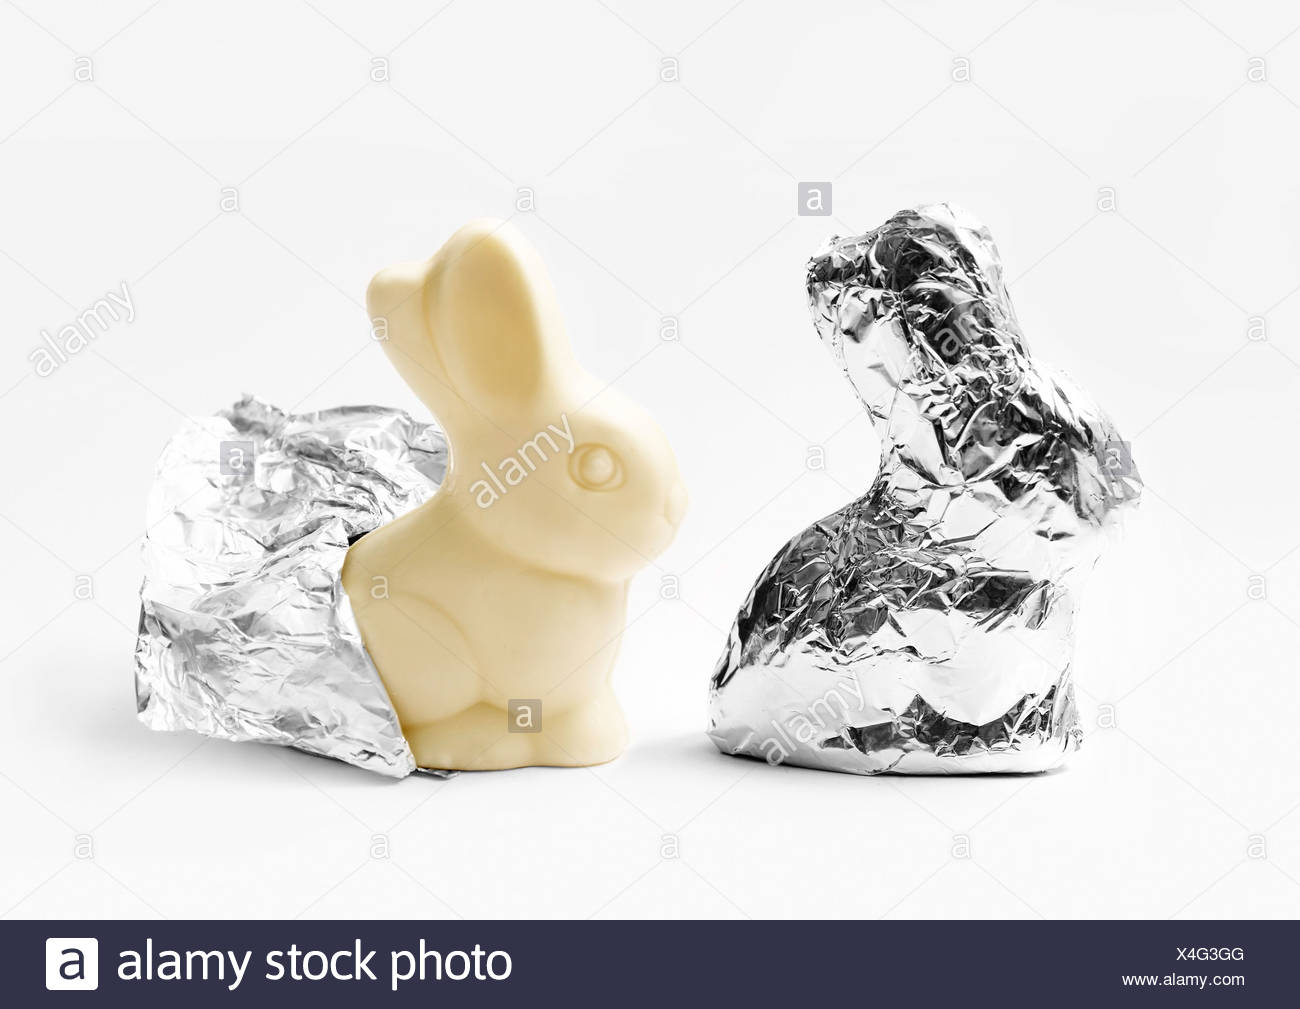 White chocolate rabbits wrapped in aluminium foil - Stock Image